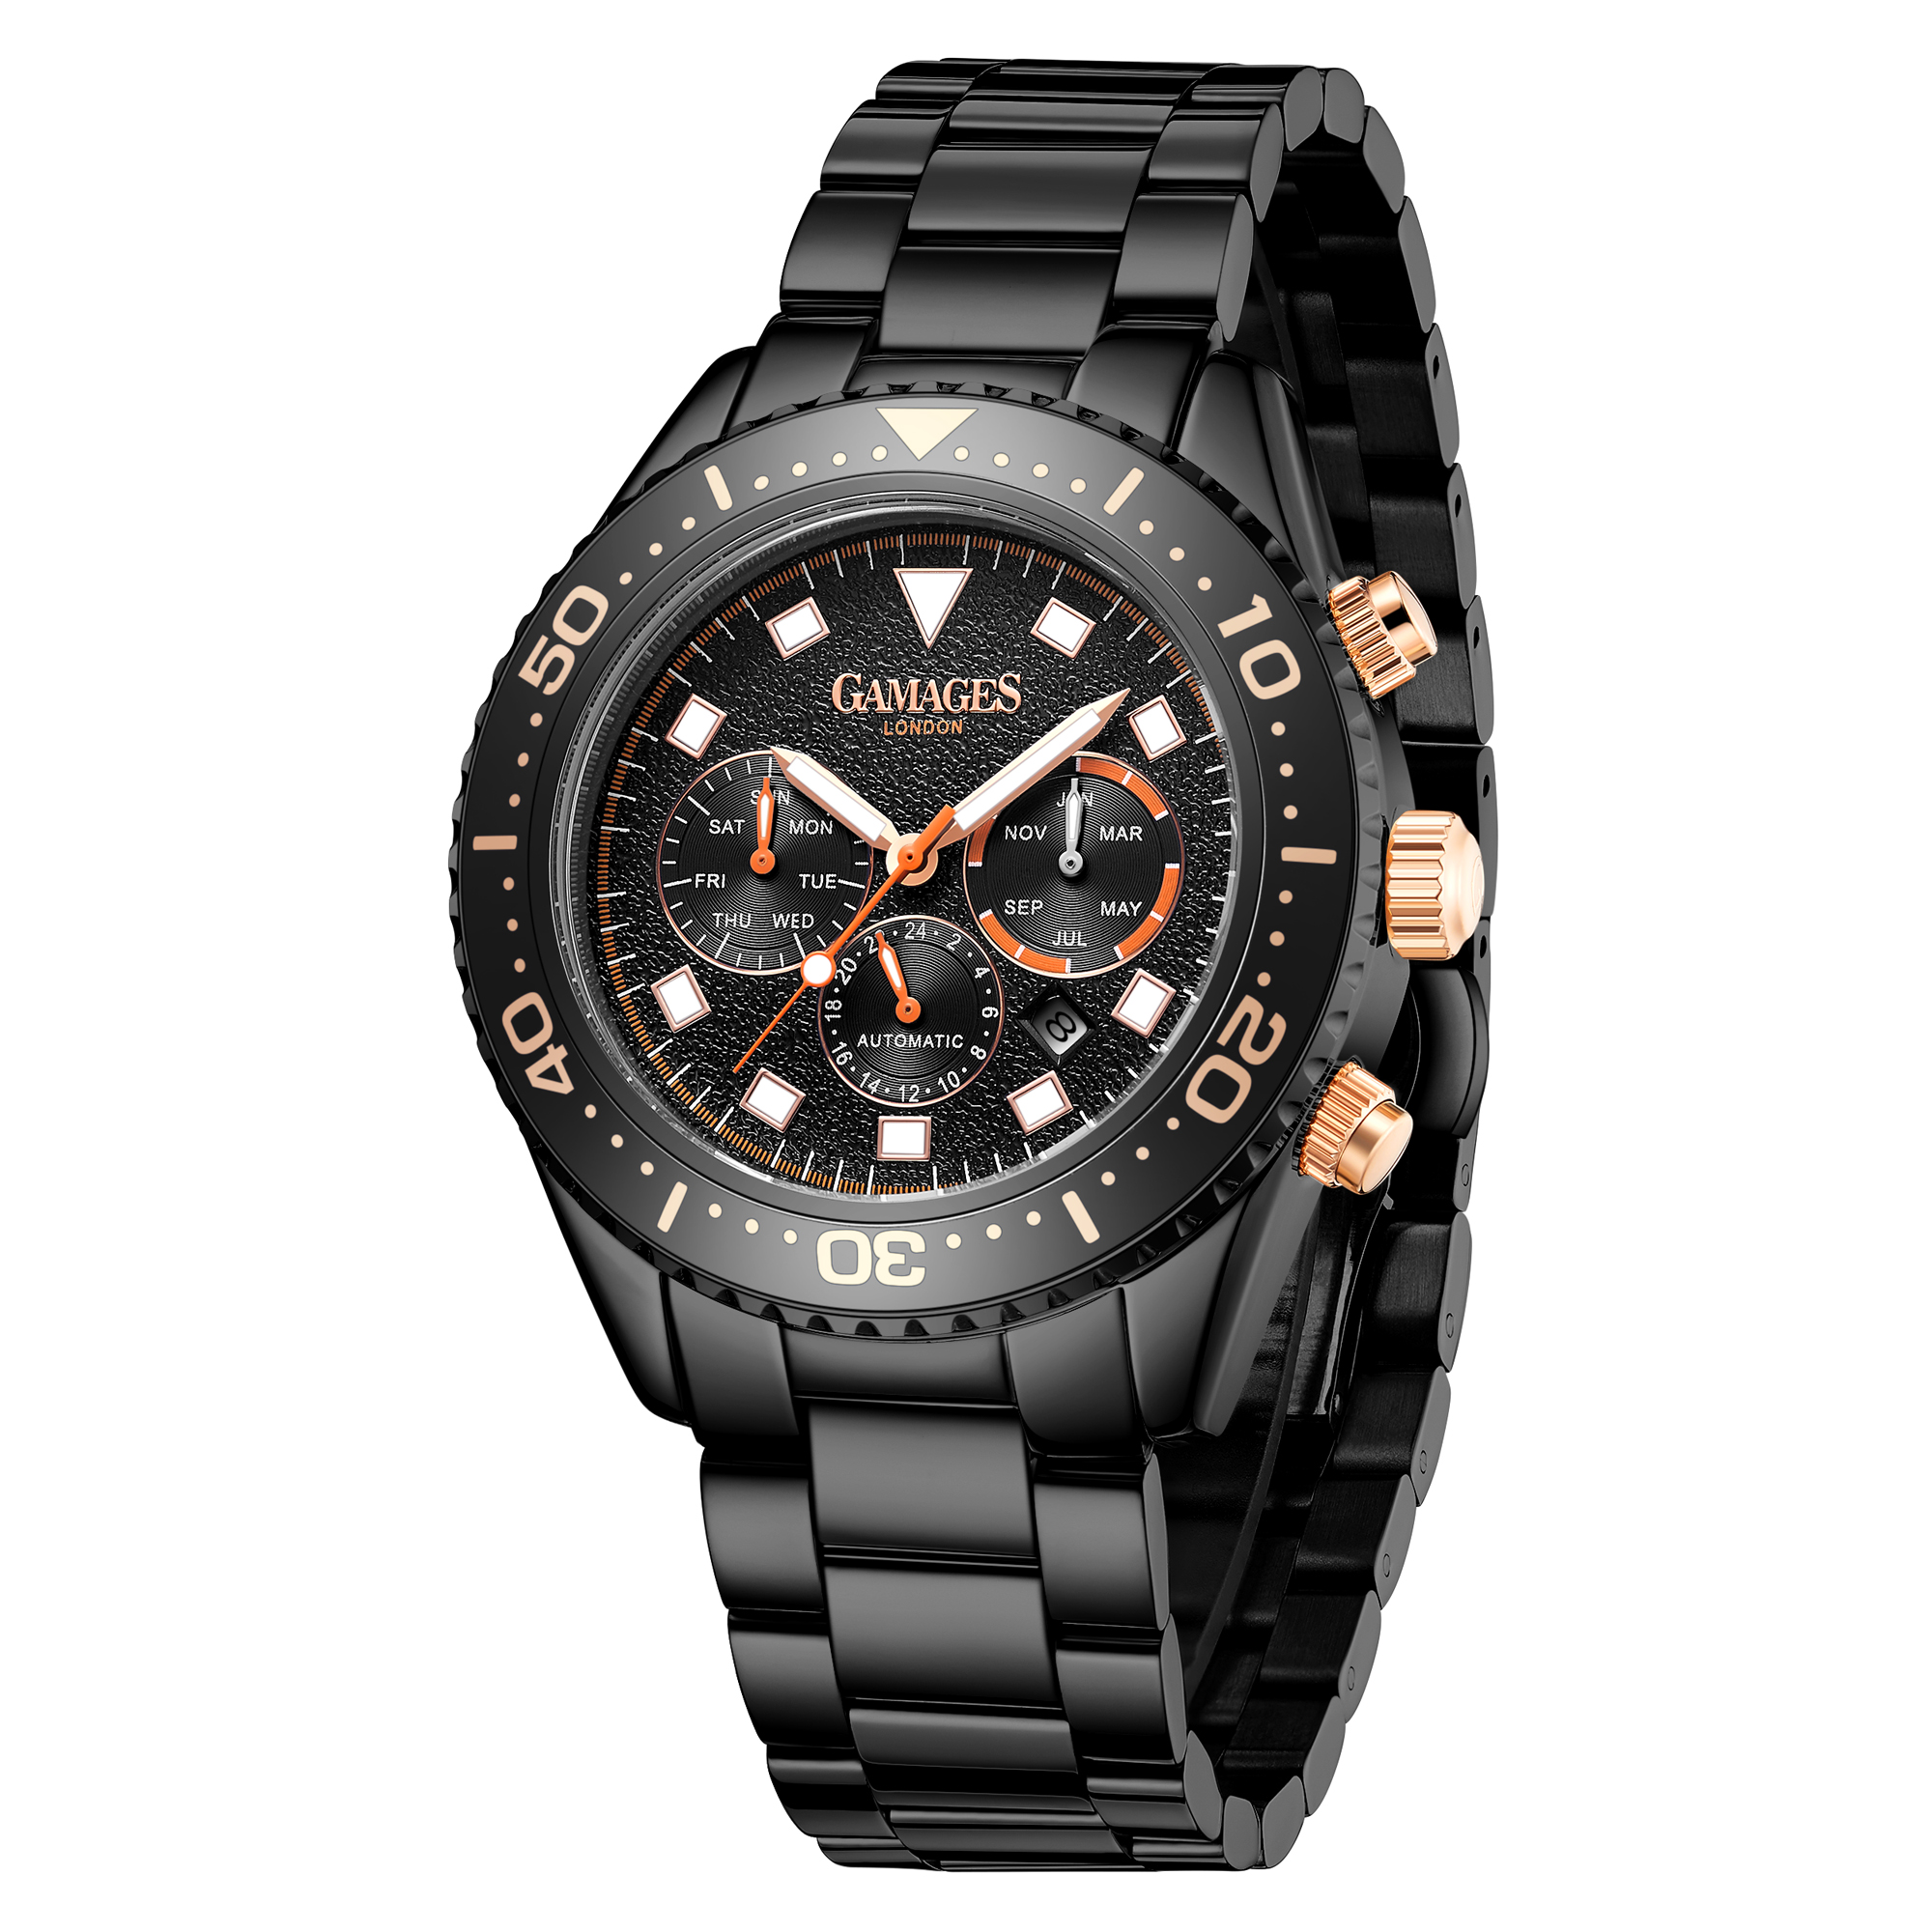 Limited Edition Hand Assembled Gamages Allure Automatic Black – 5 Year Warranty & Free Delivery - Image 4 of 4